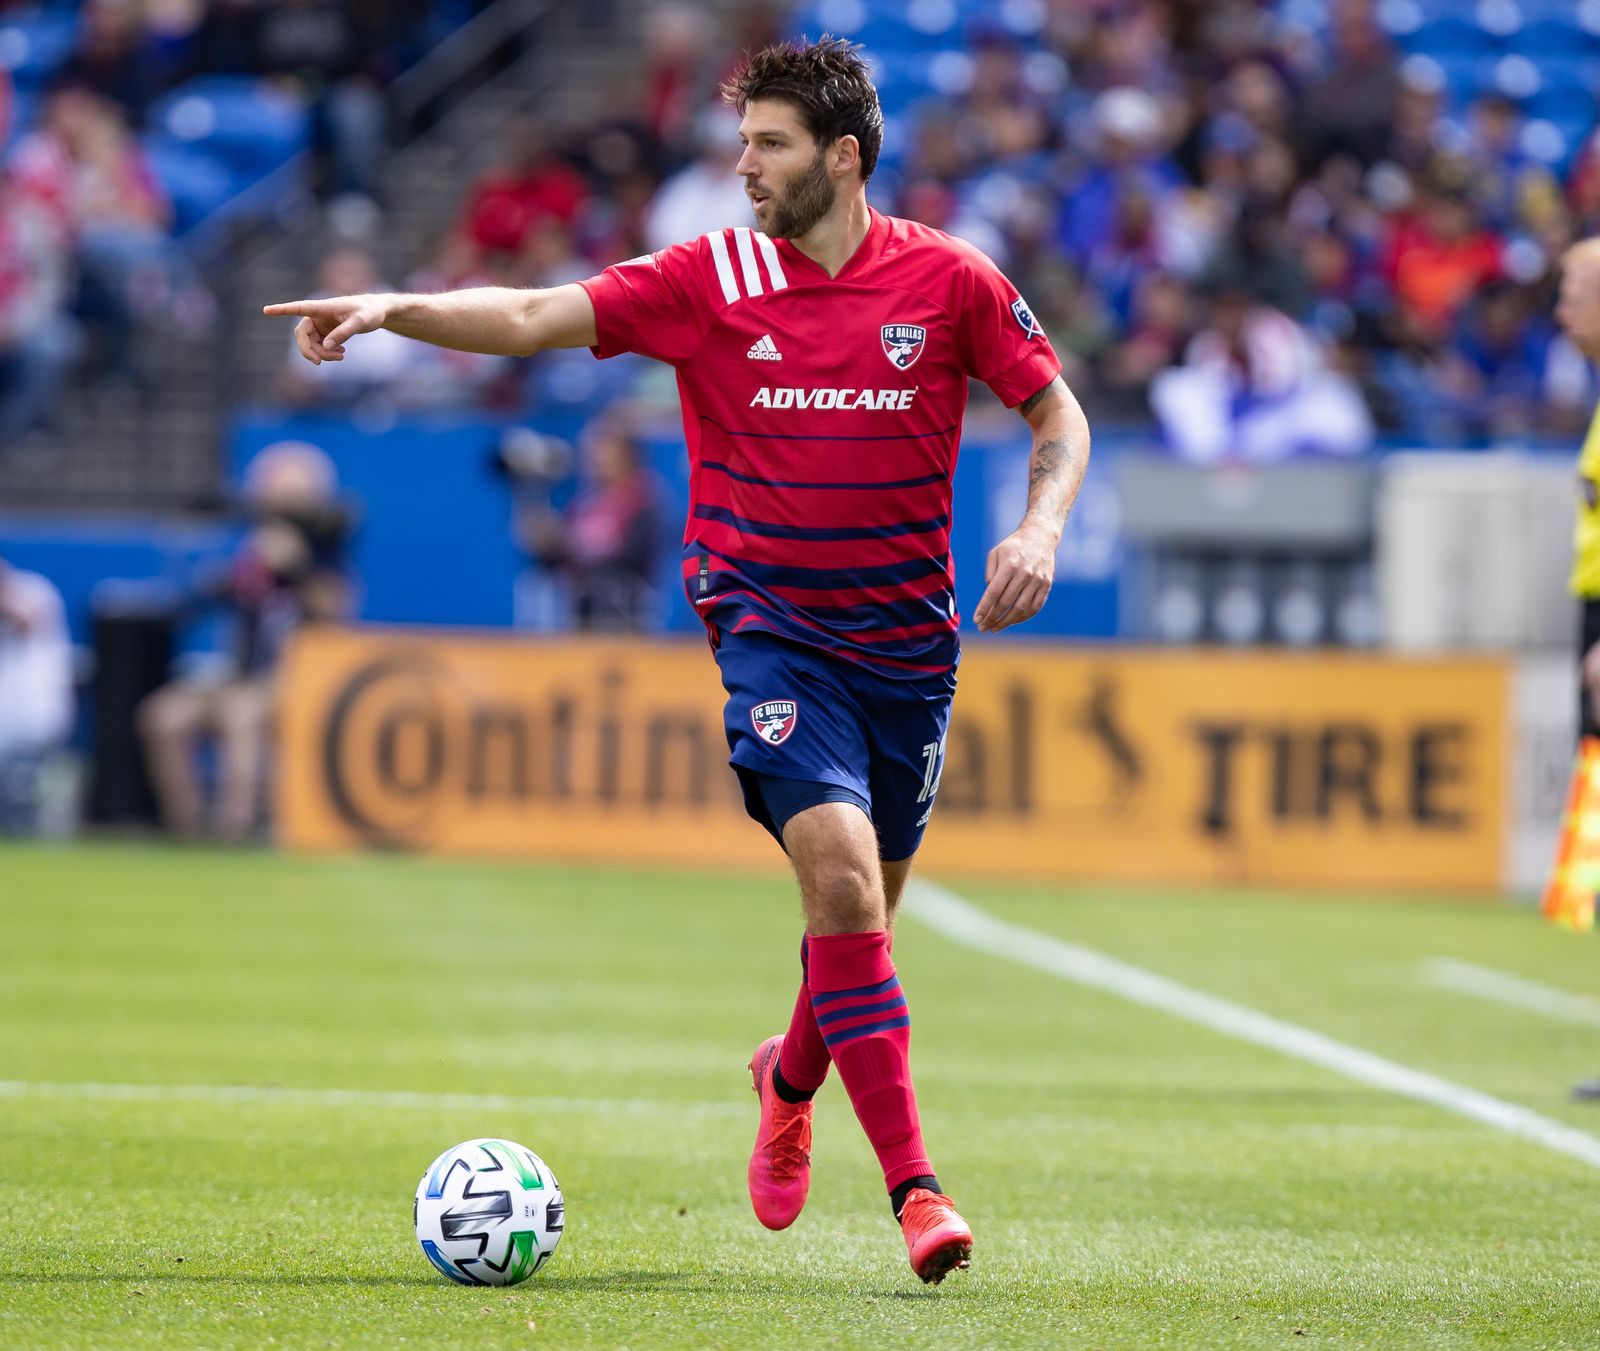 Hollingshead: MARCH 07 MLS - Montreal at FC Dallas